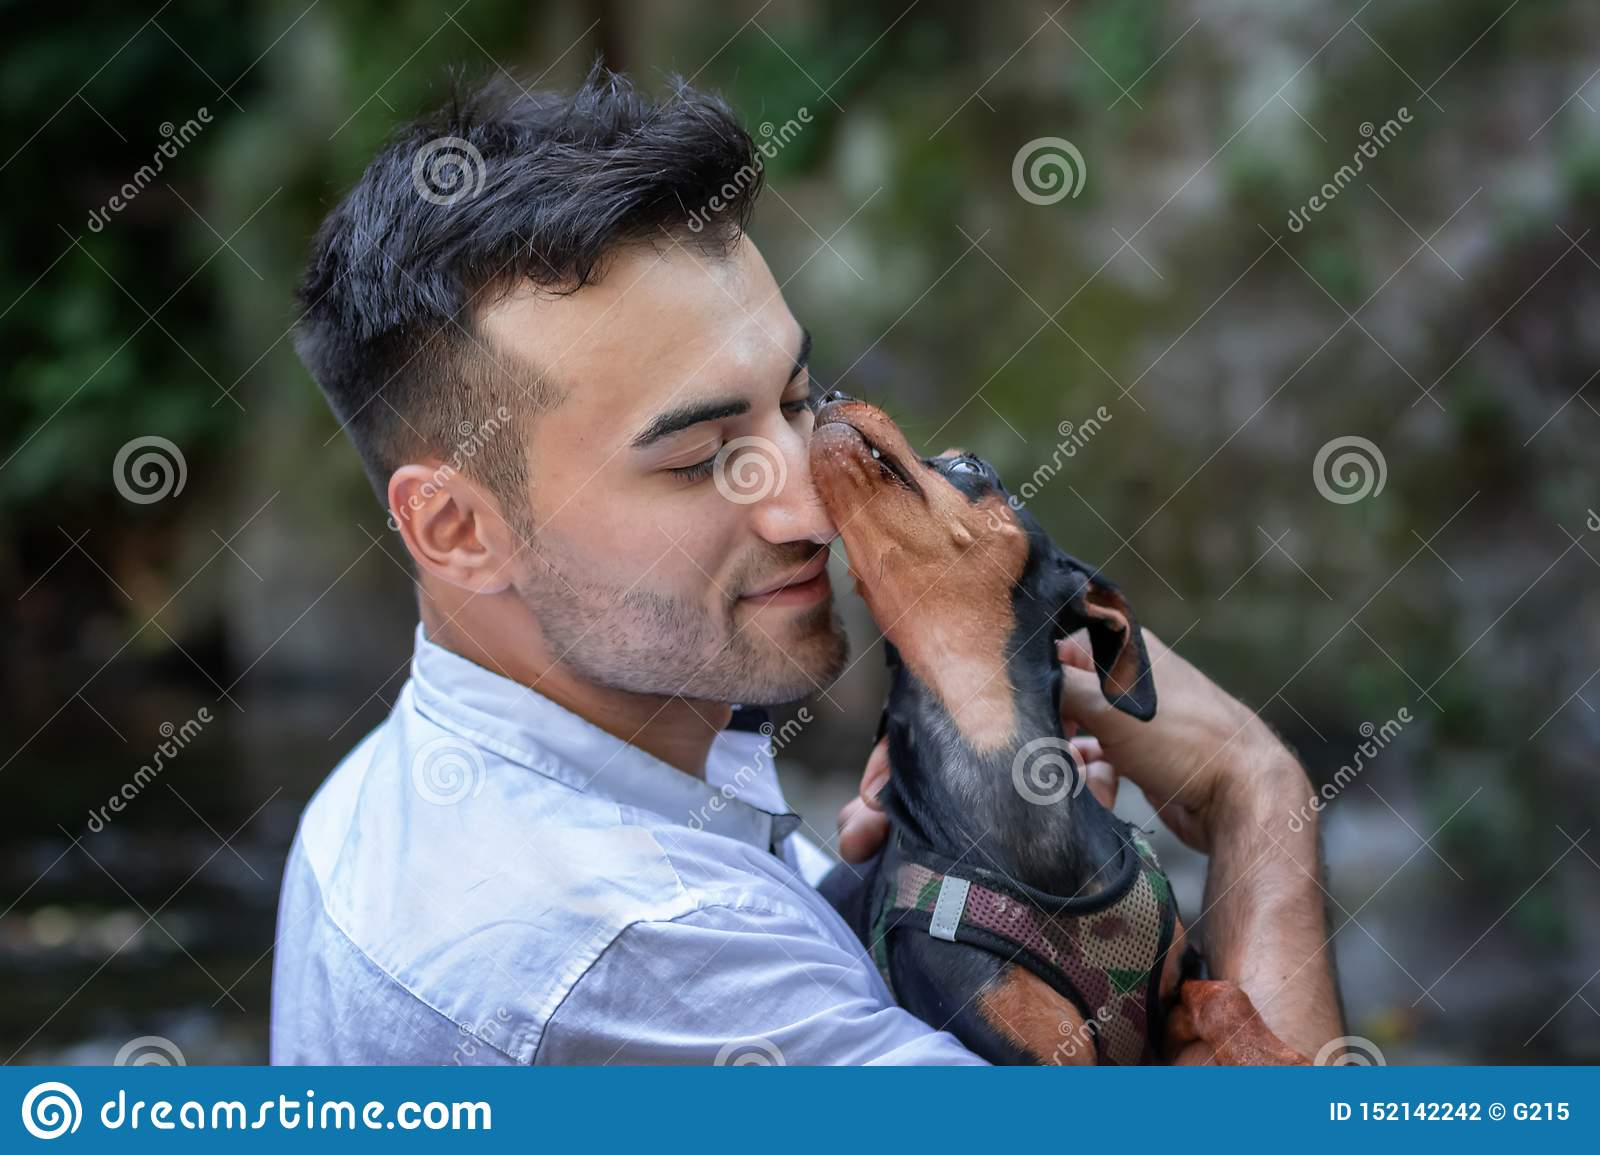 young man with dog, outdoor